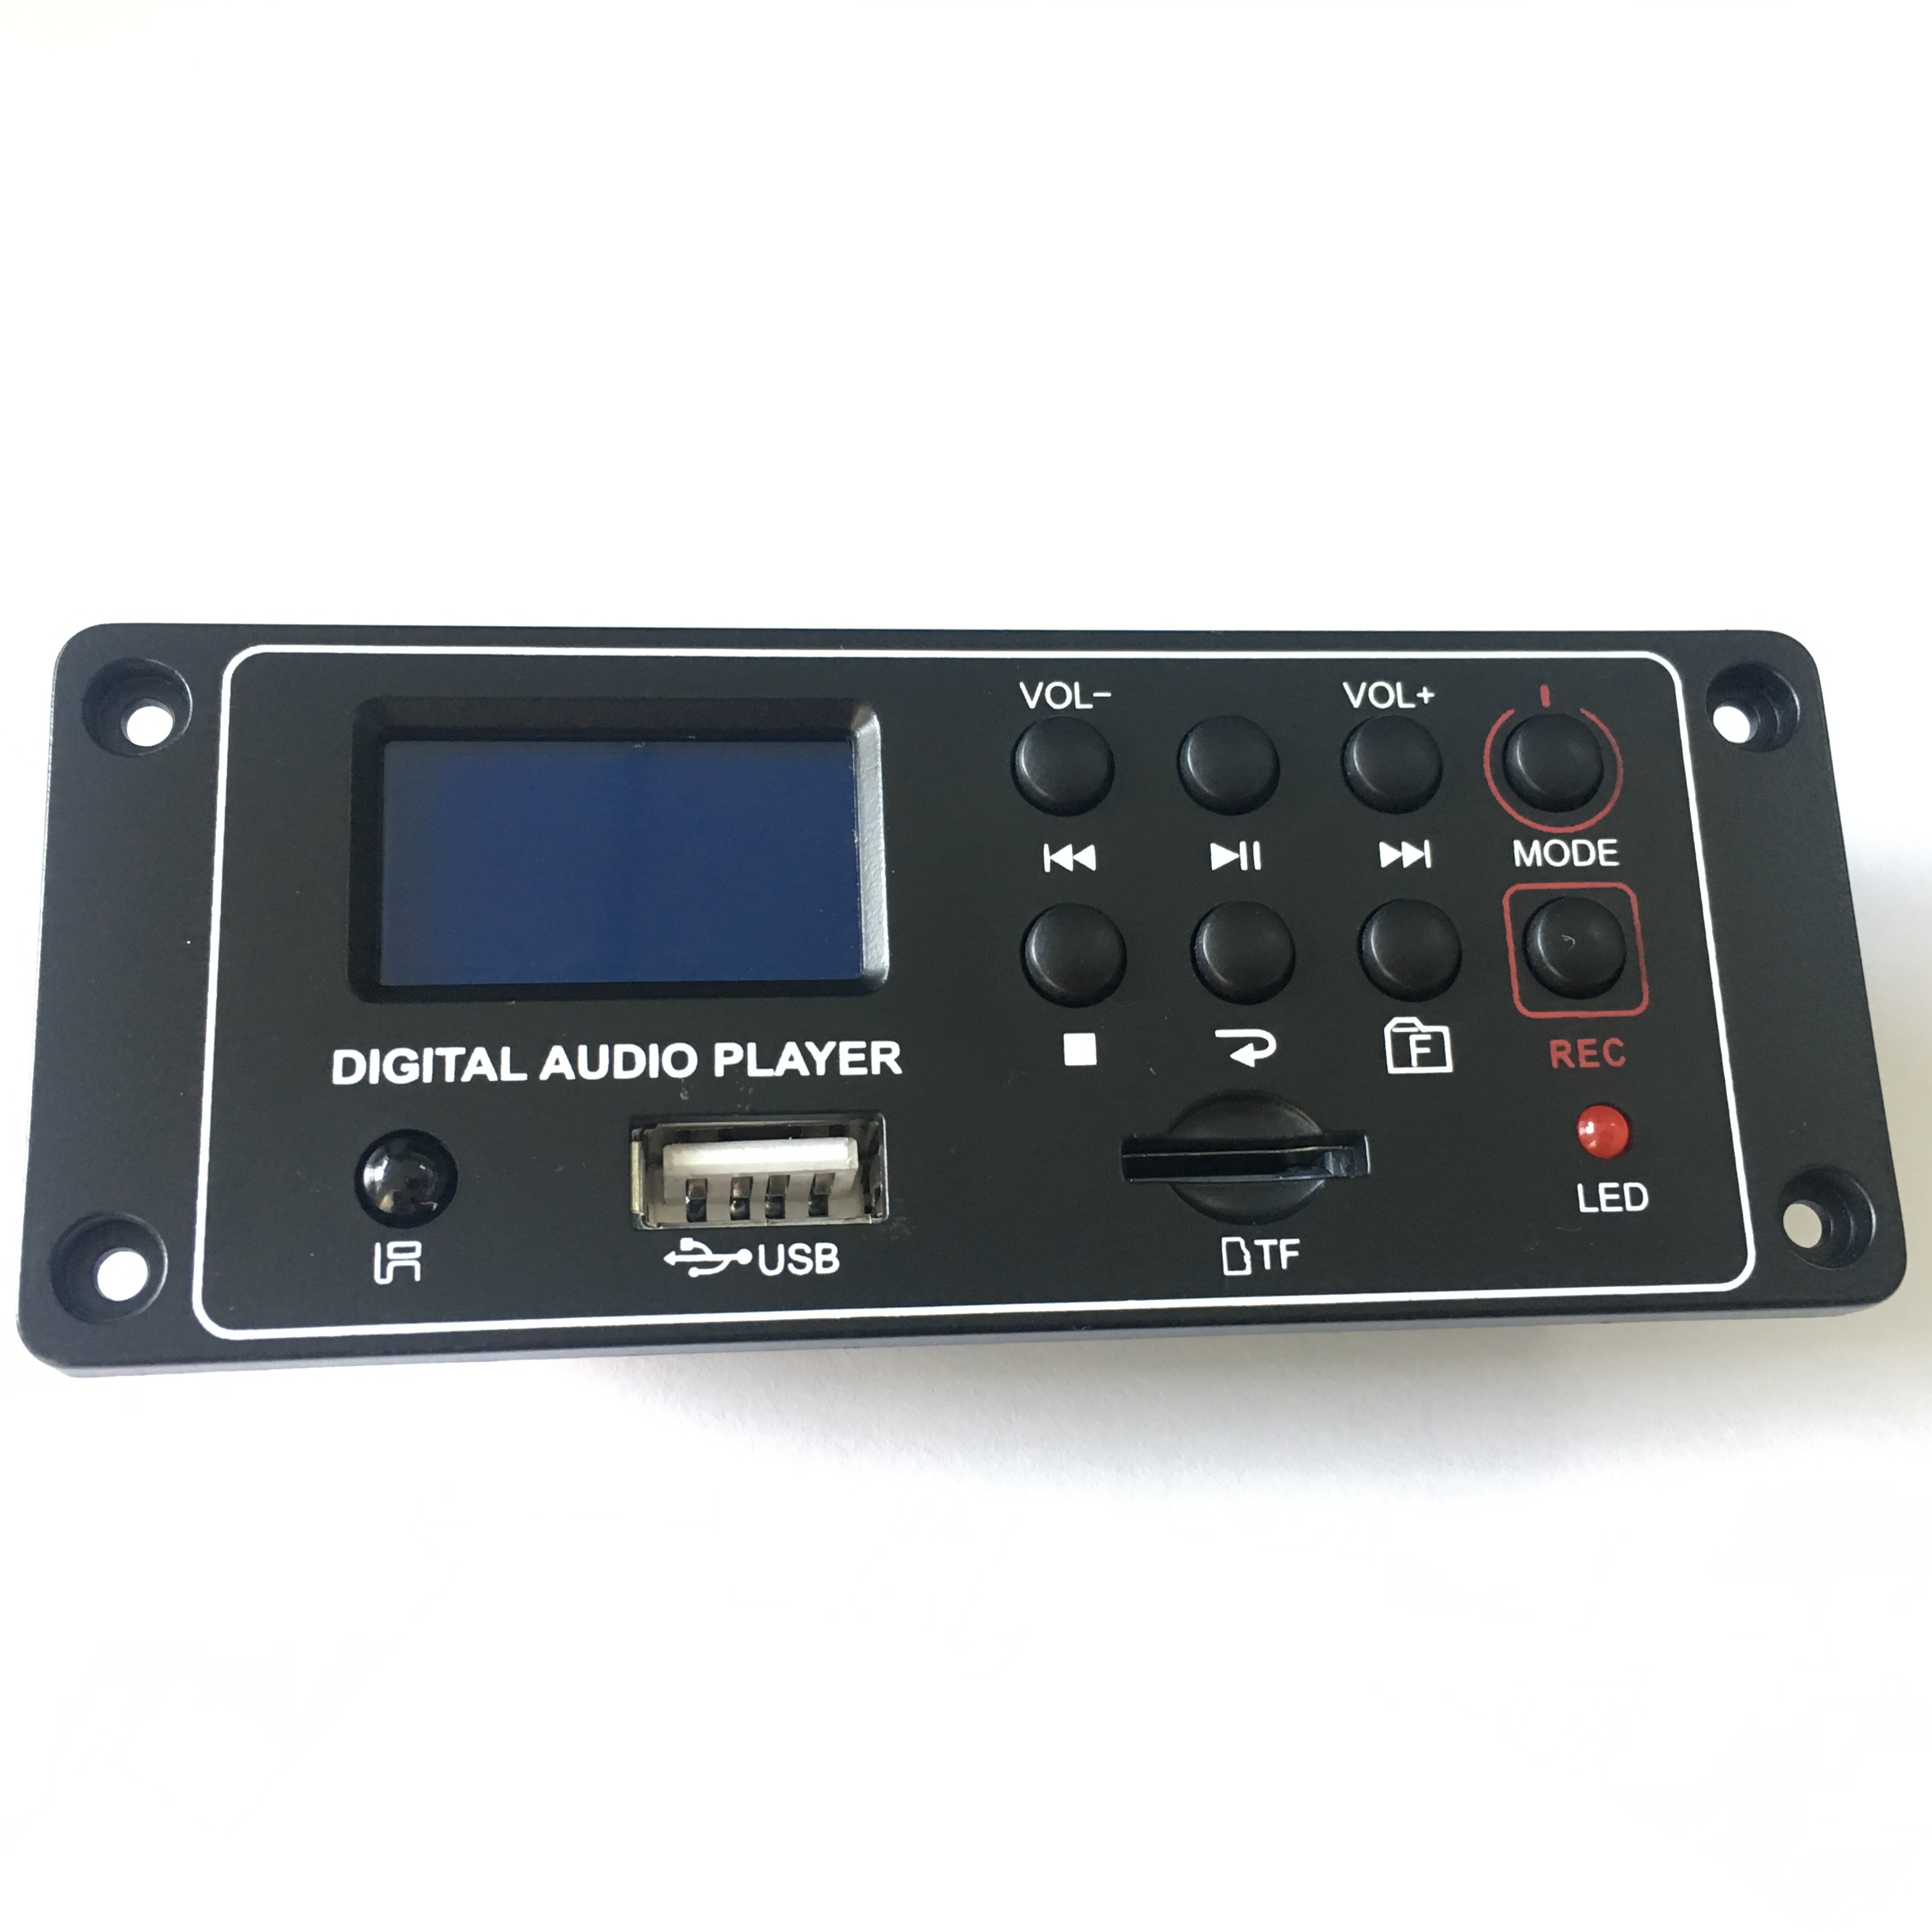 Fm Usb Mp3 Player Module Ir Remote Control Keymemoryinfraredremotecontrolreceivercircuit Suppliers And Manufacturers At